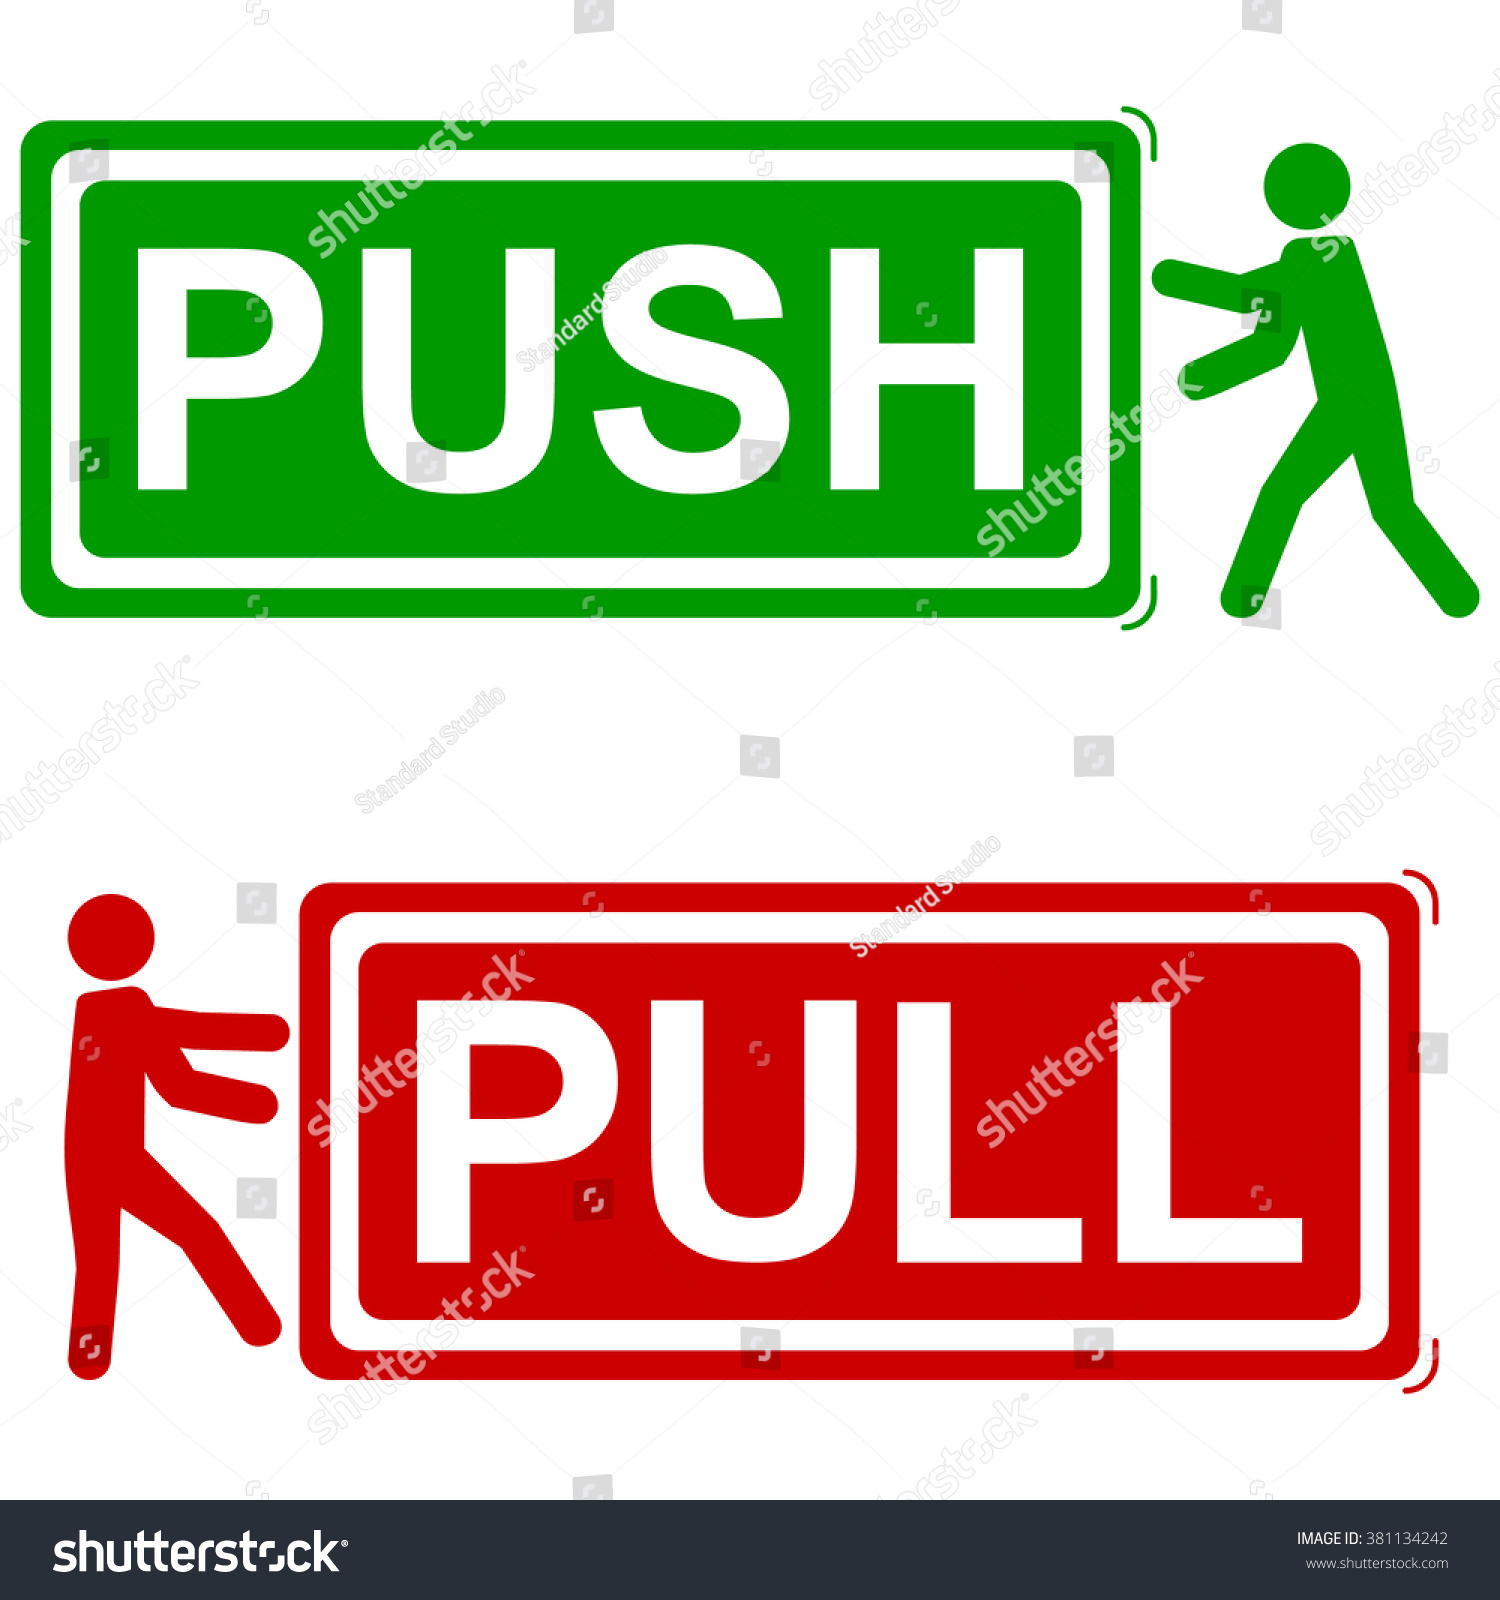 Push and pull signs vector illustration green red icons with man icon pushing or pulling